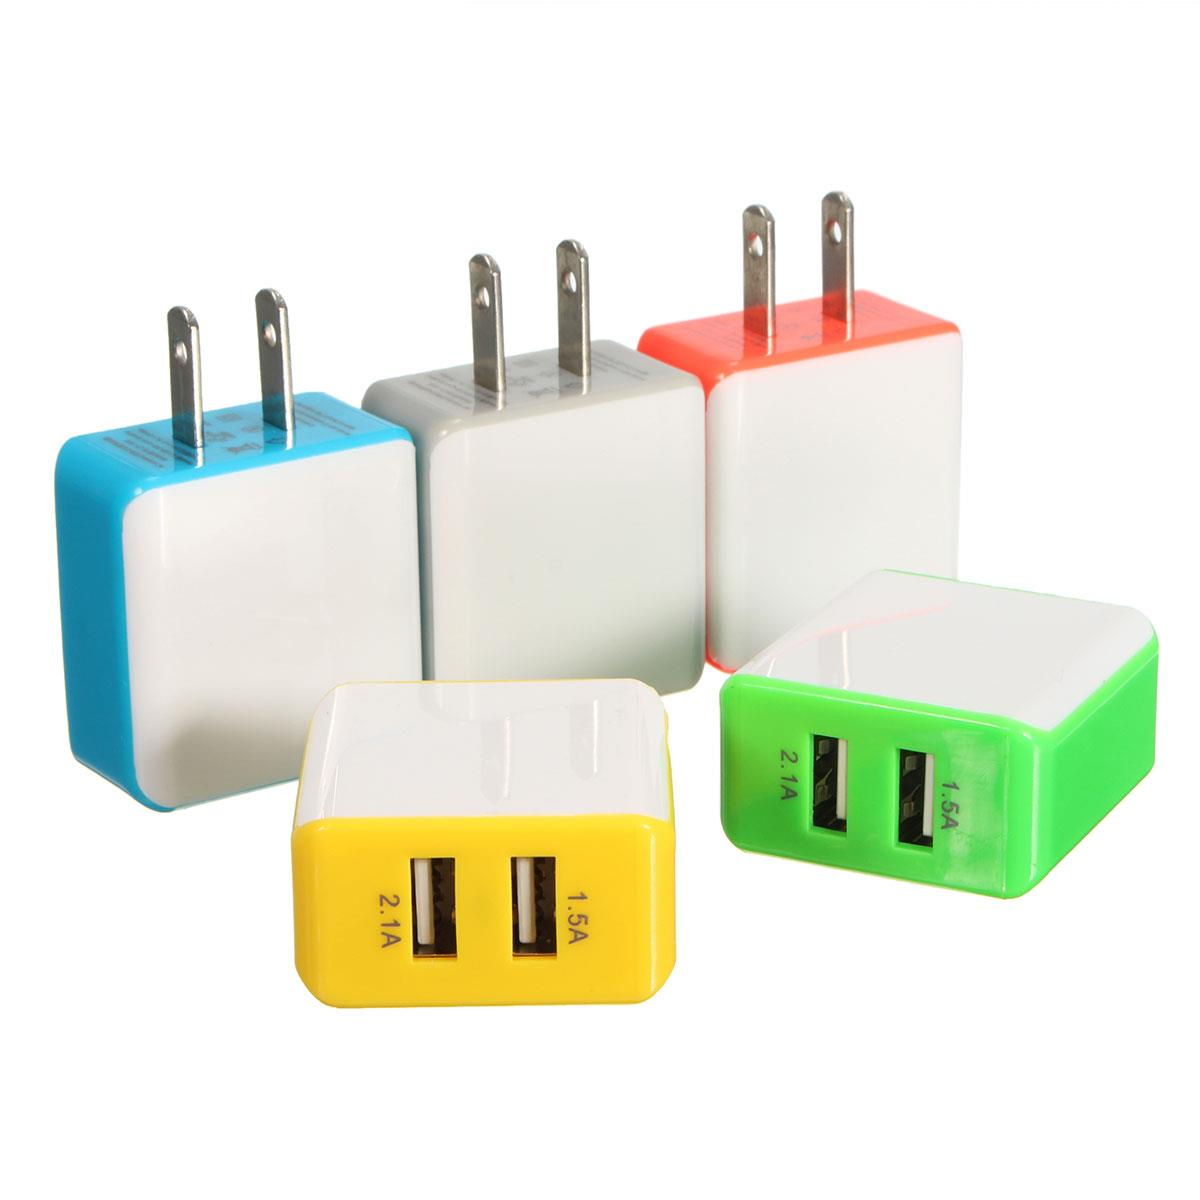 2.1A/1.5A Dual 2 USB Wall Charger LED Home Travel Charging Power Adapter US Plug